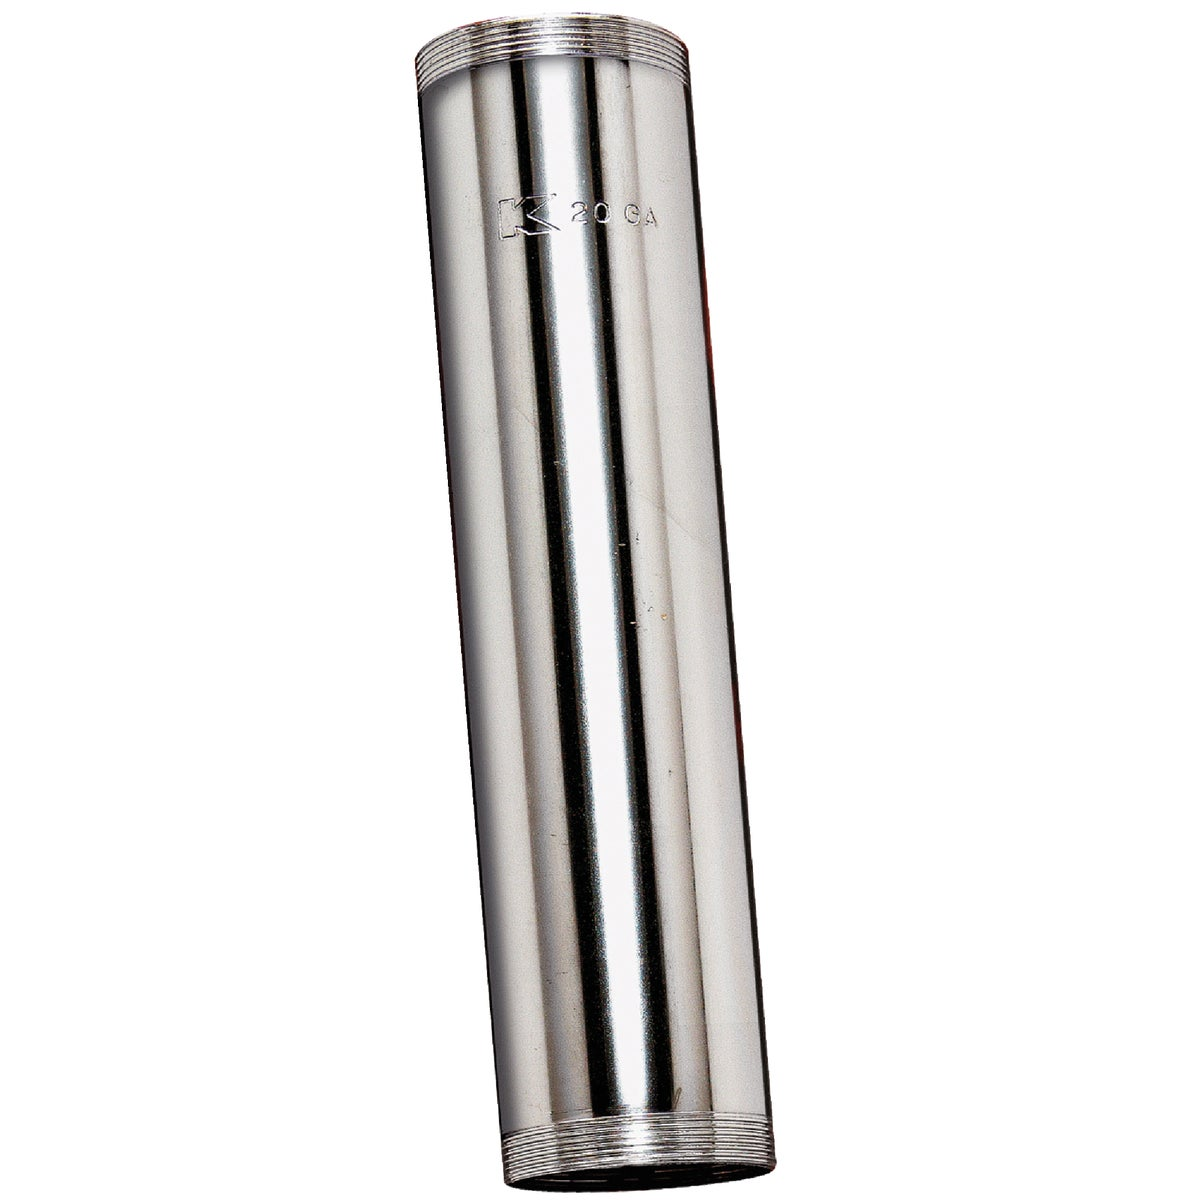 1-1/4X12 THREADED TUBE - 1161K by Plumb Pak/keeney Mfg